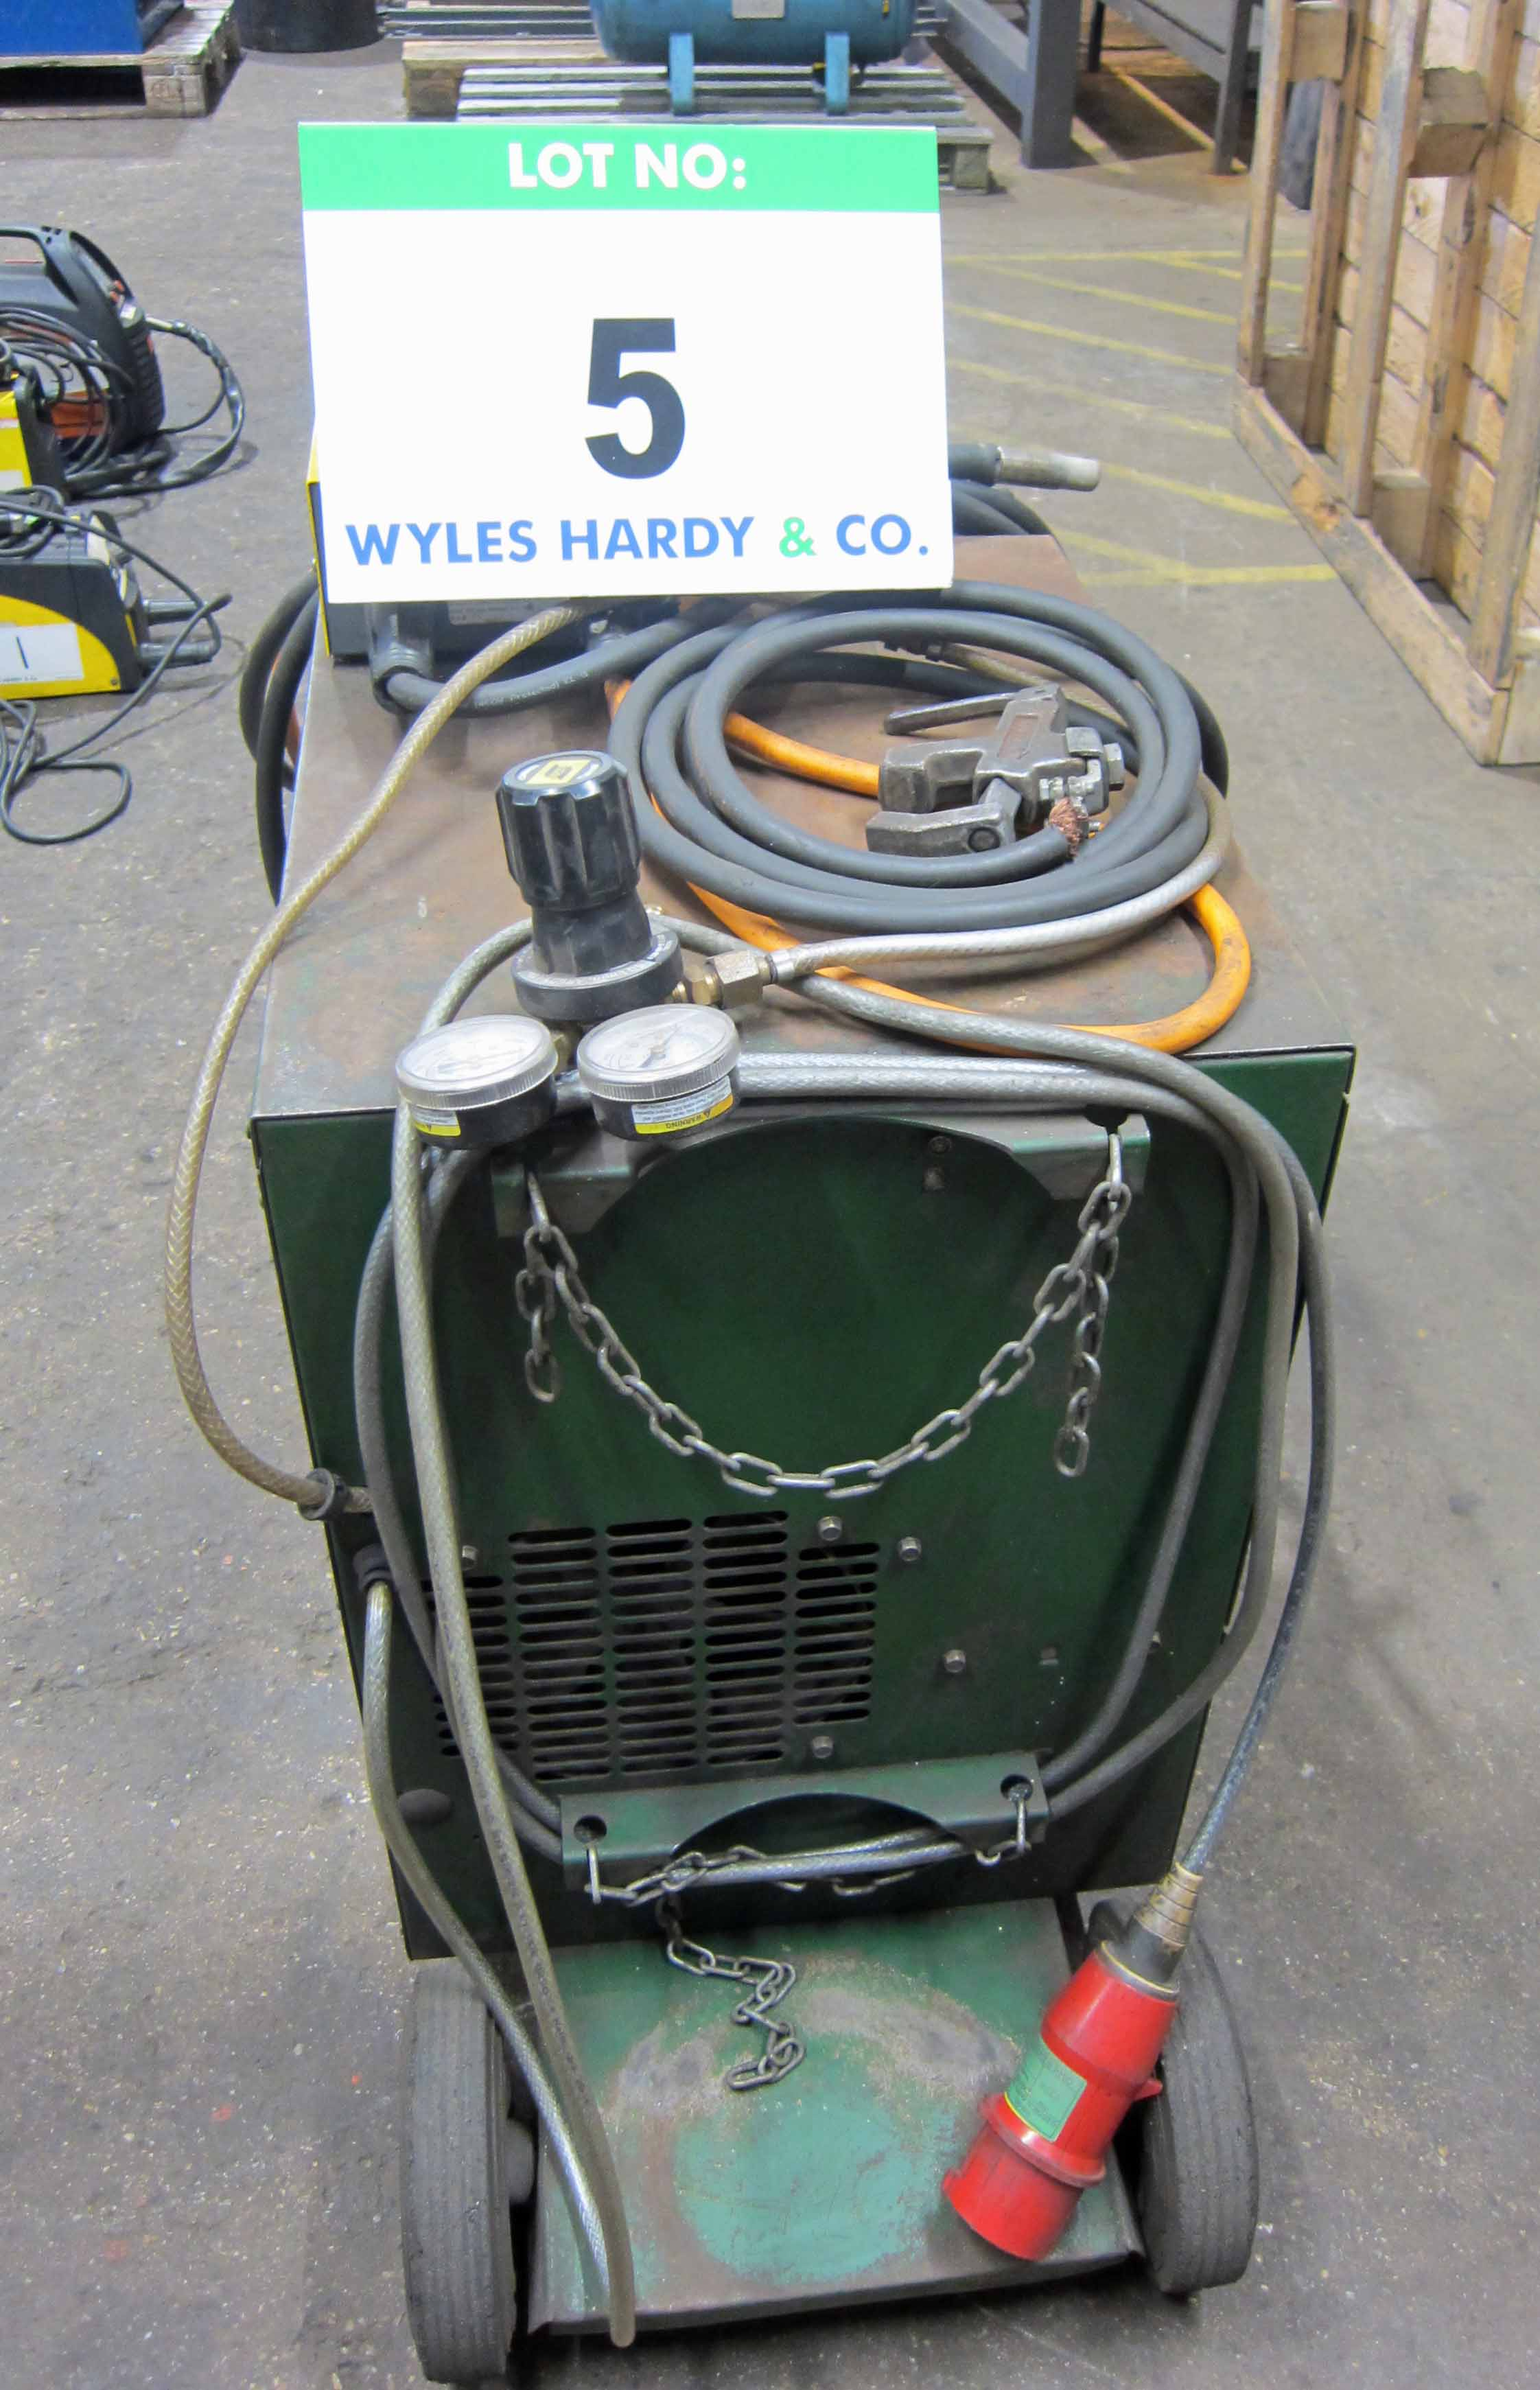 A MIGTRONIC Model Mig 300 Mig Welder complete with QUALITRONICS Voltage and Amp Meters and Gun, - Image 3 of 6